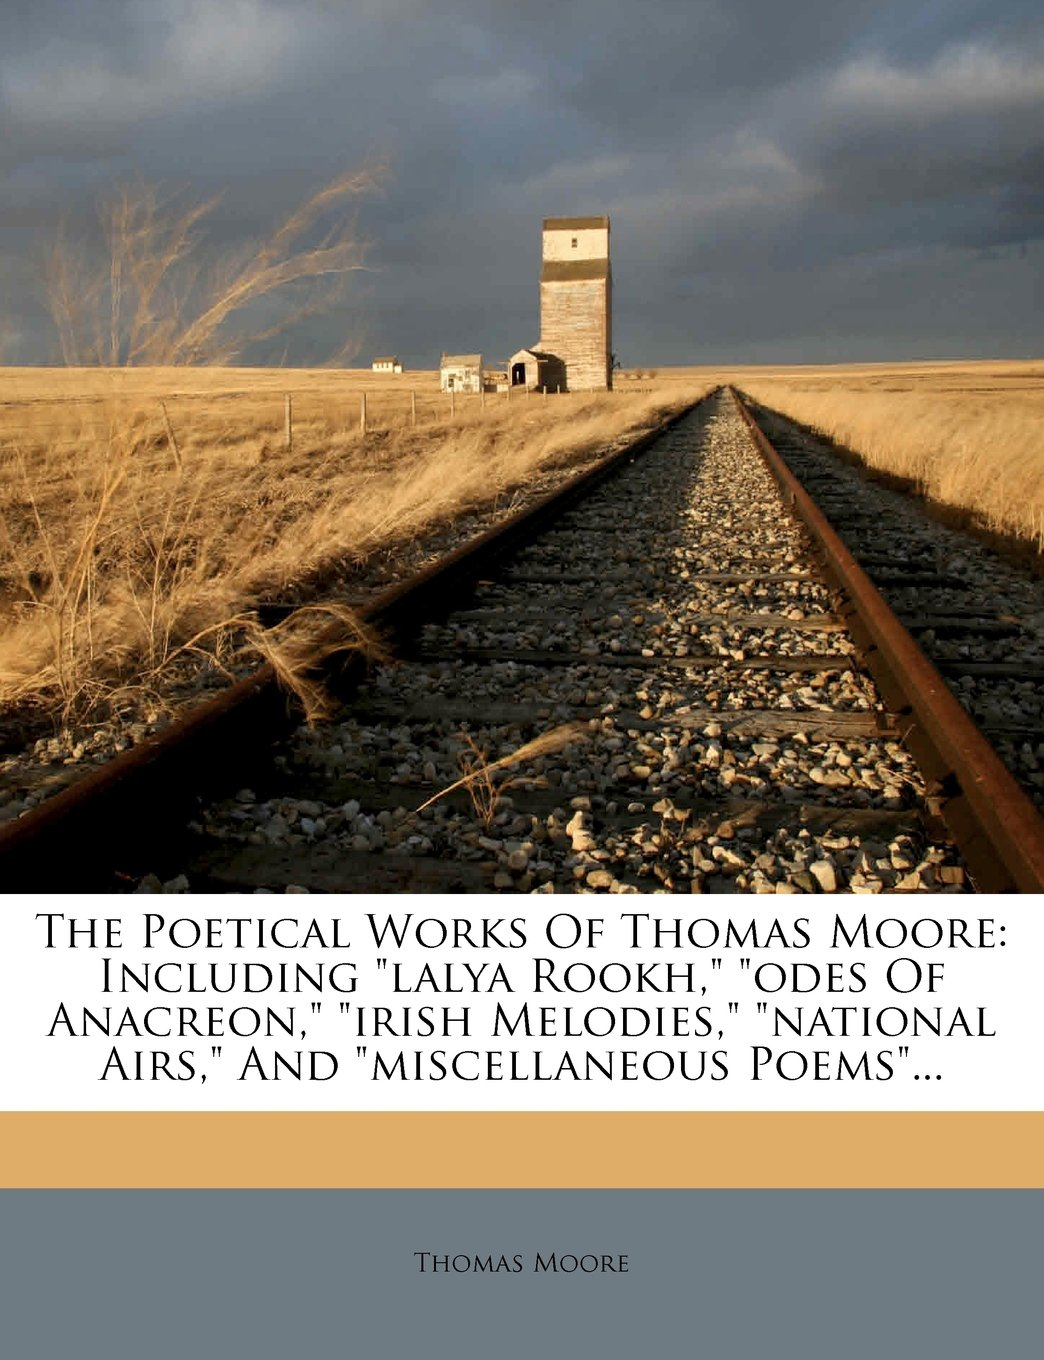 Read Online The Poetical Works of Thomas Moore: Including Lalya Rookh, Odes of Anacreon, Irish Melodies, National Airs, and Miscellaneous Poems... pdf epub